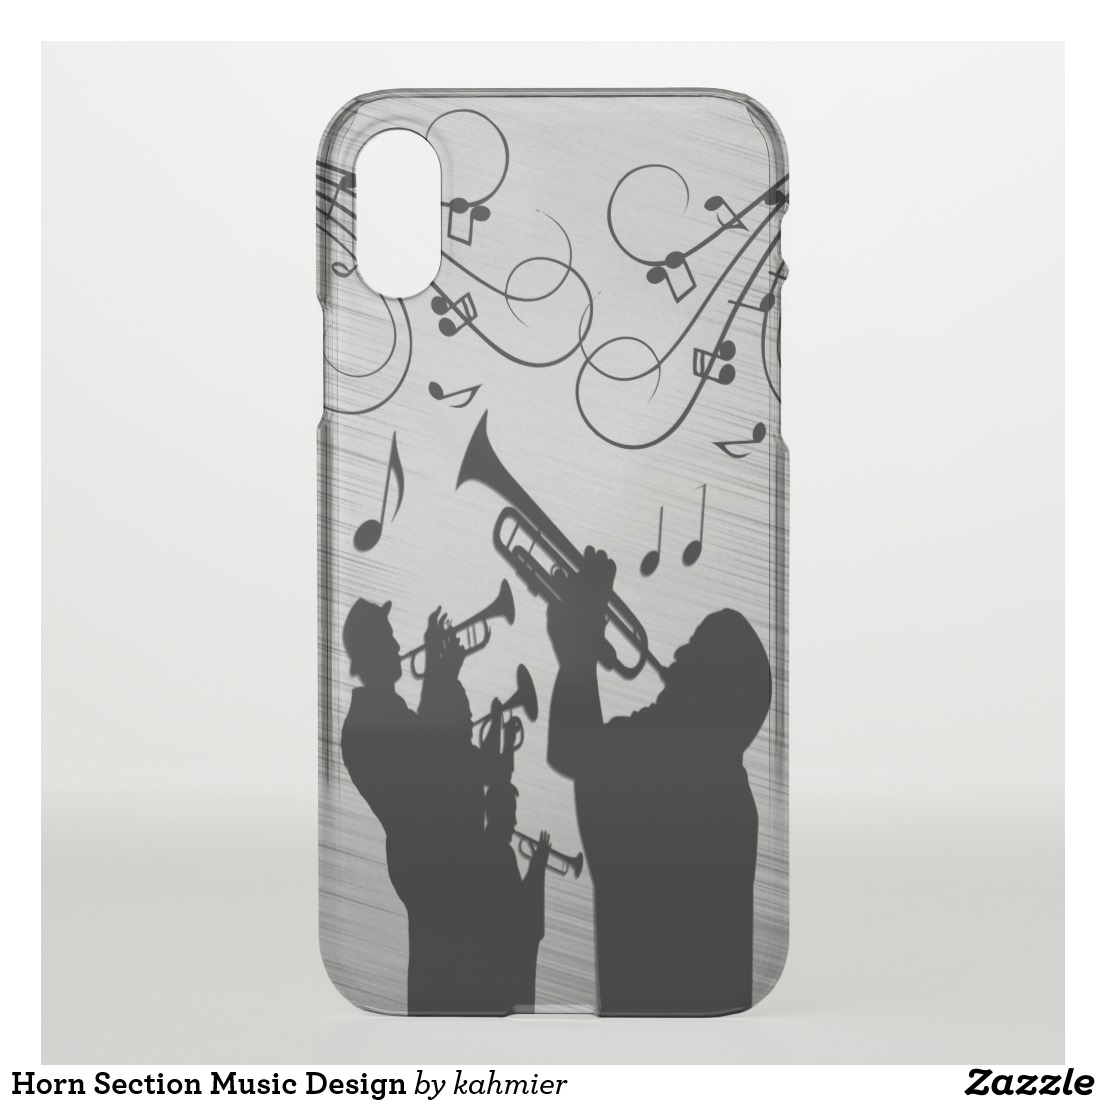 Horn Section Music Design Uncommon iPhone Case